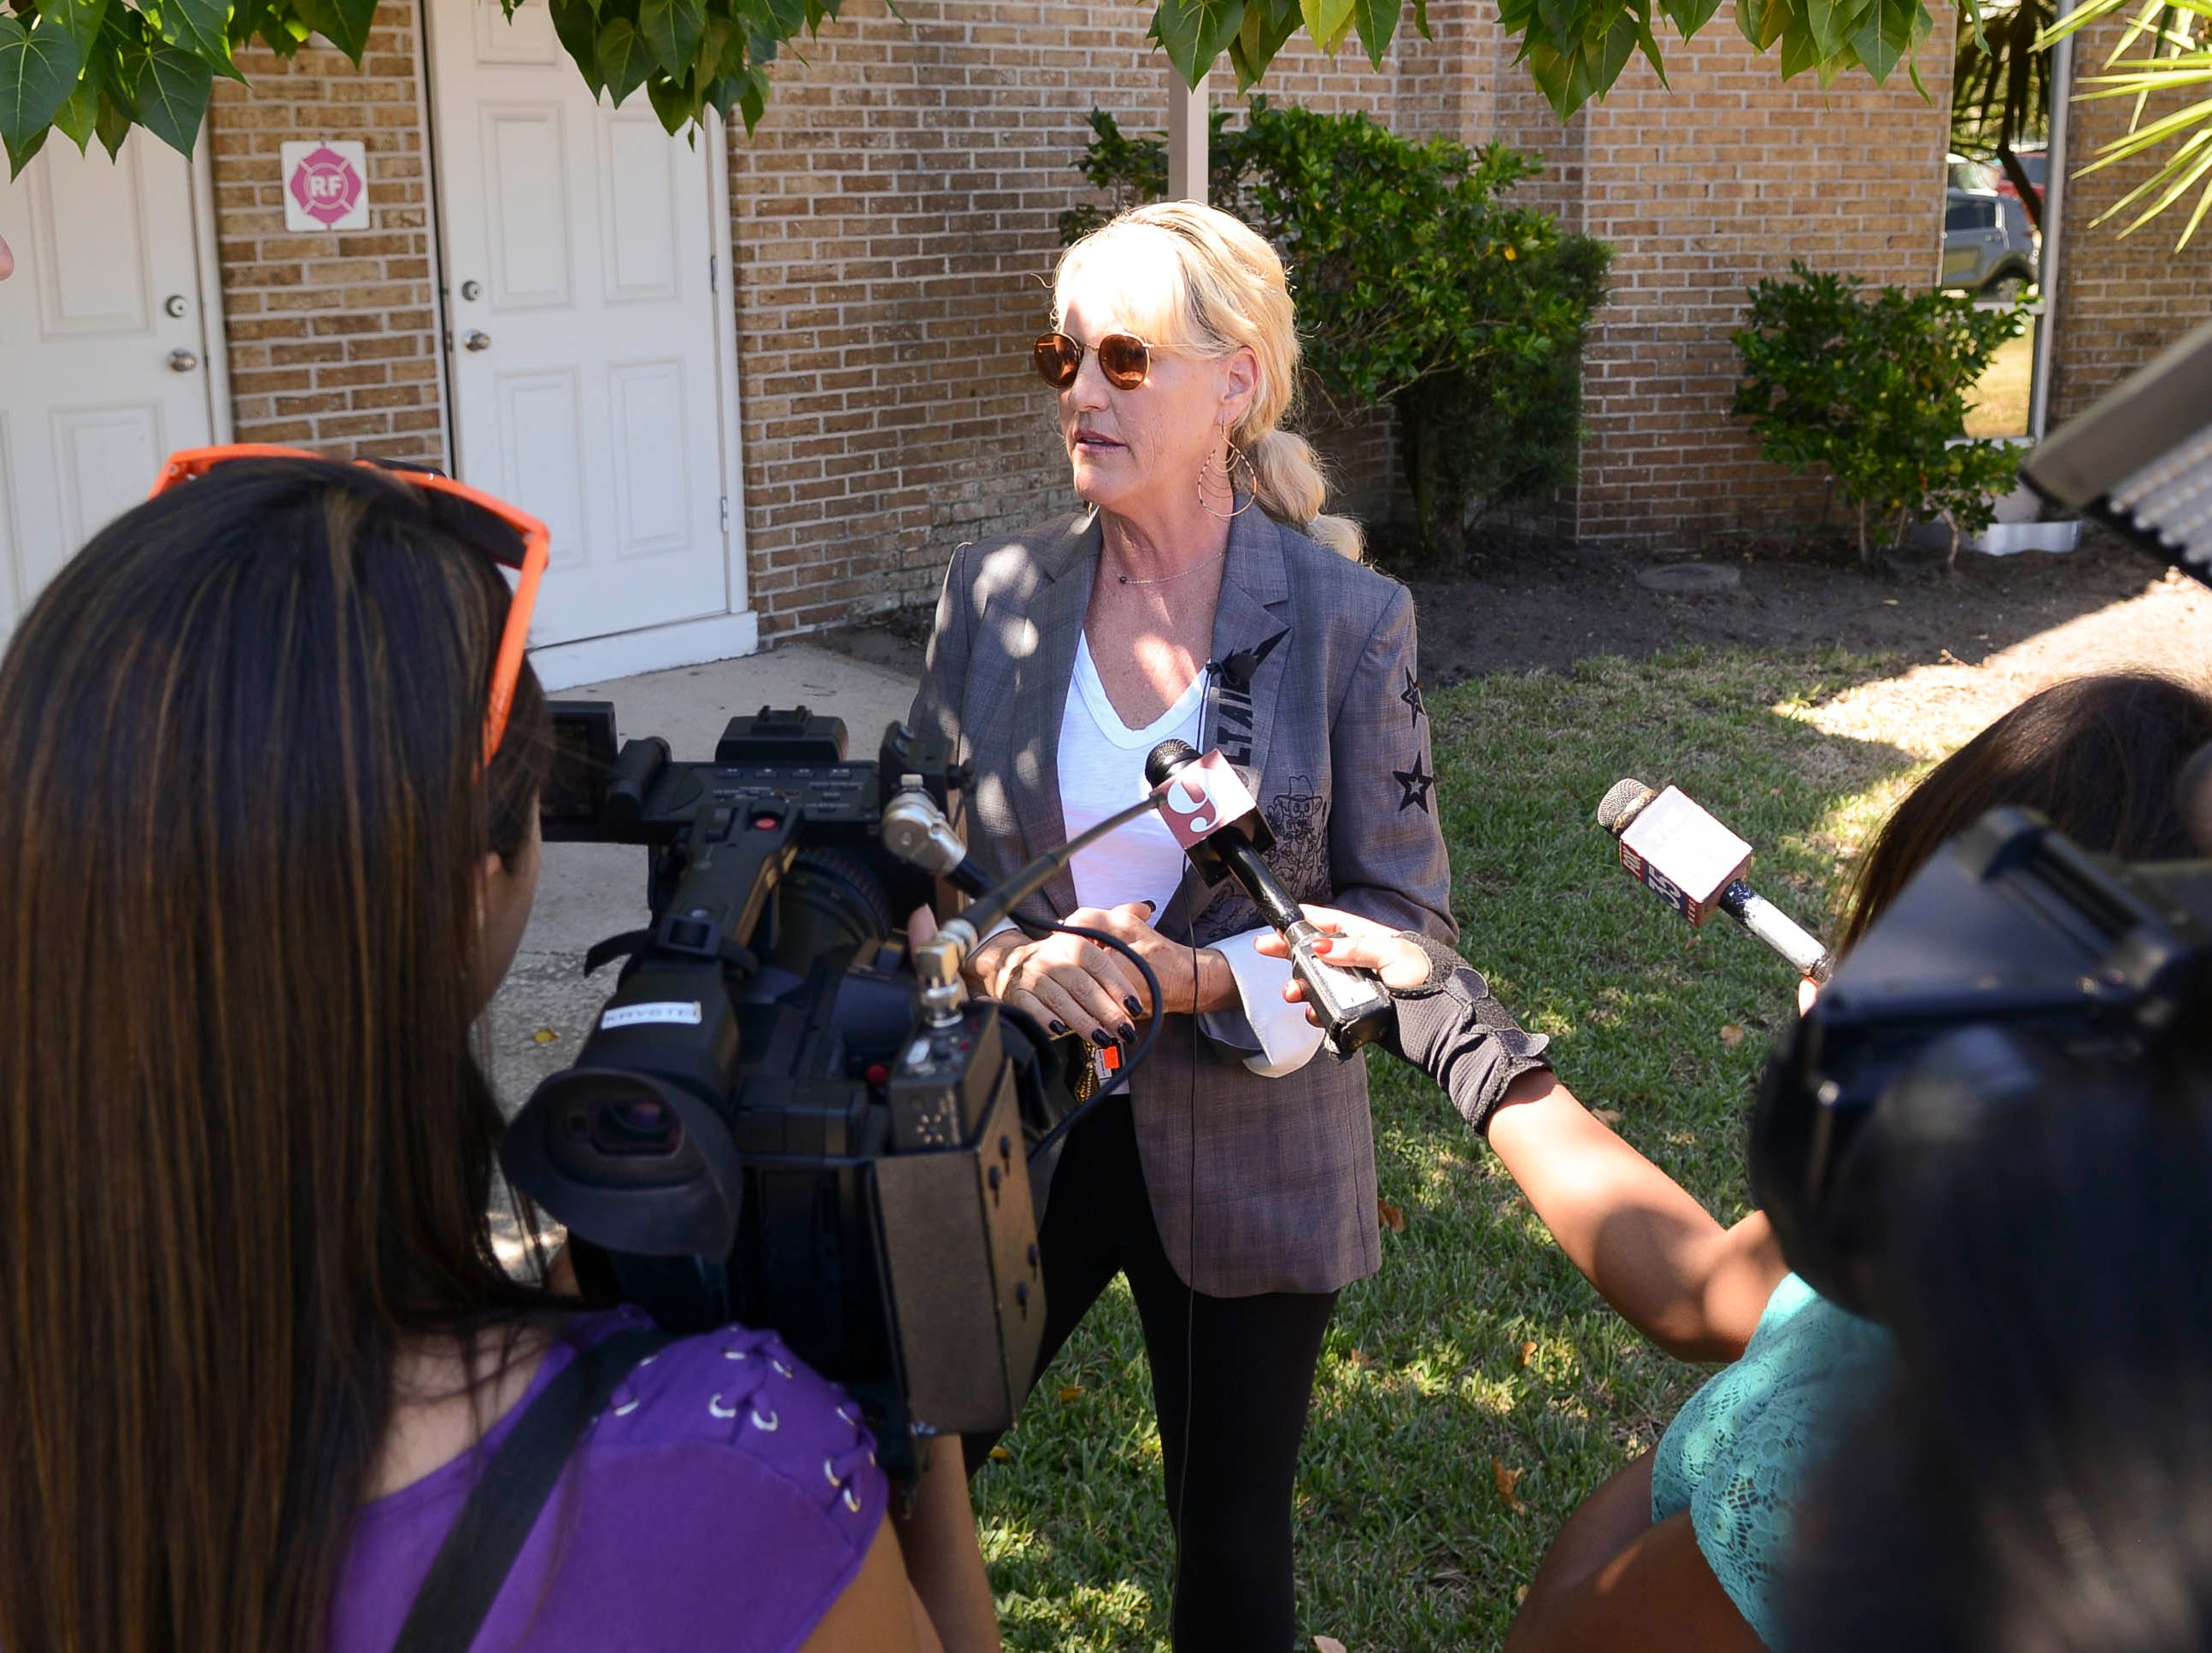 Environmental activist Erin Brockovich talks to the news media before a town hall at Kingdom Gate Worship Center in Satellite Beach.